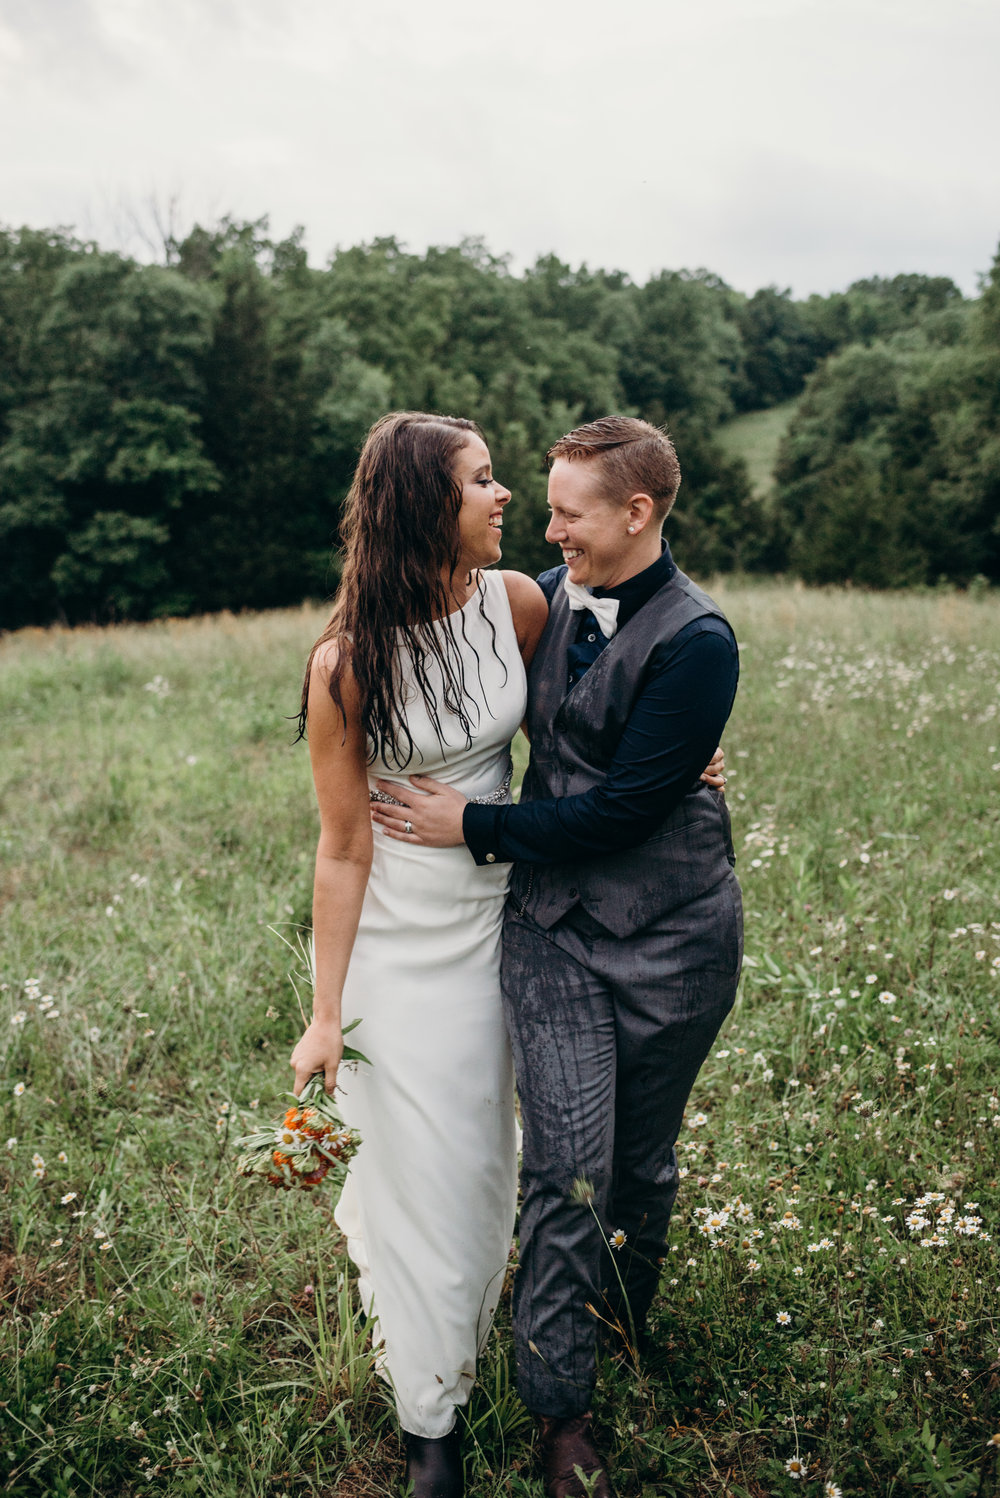 happy same-sex newlyweds embracing in Kentucky field after rainstorm